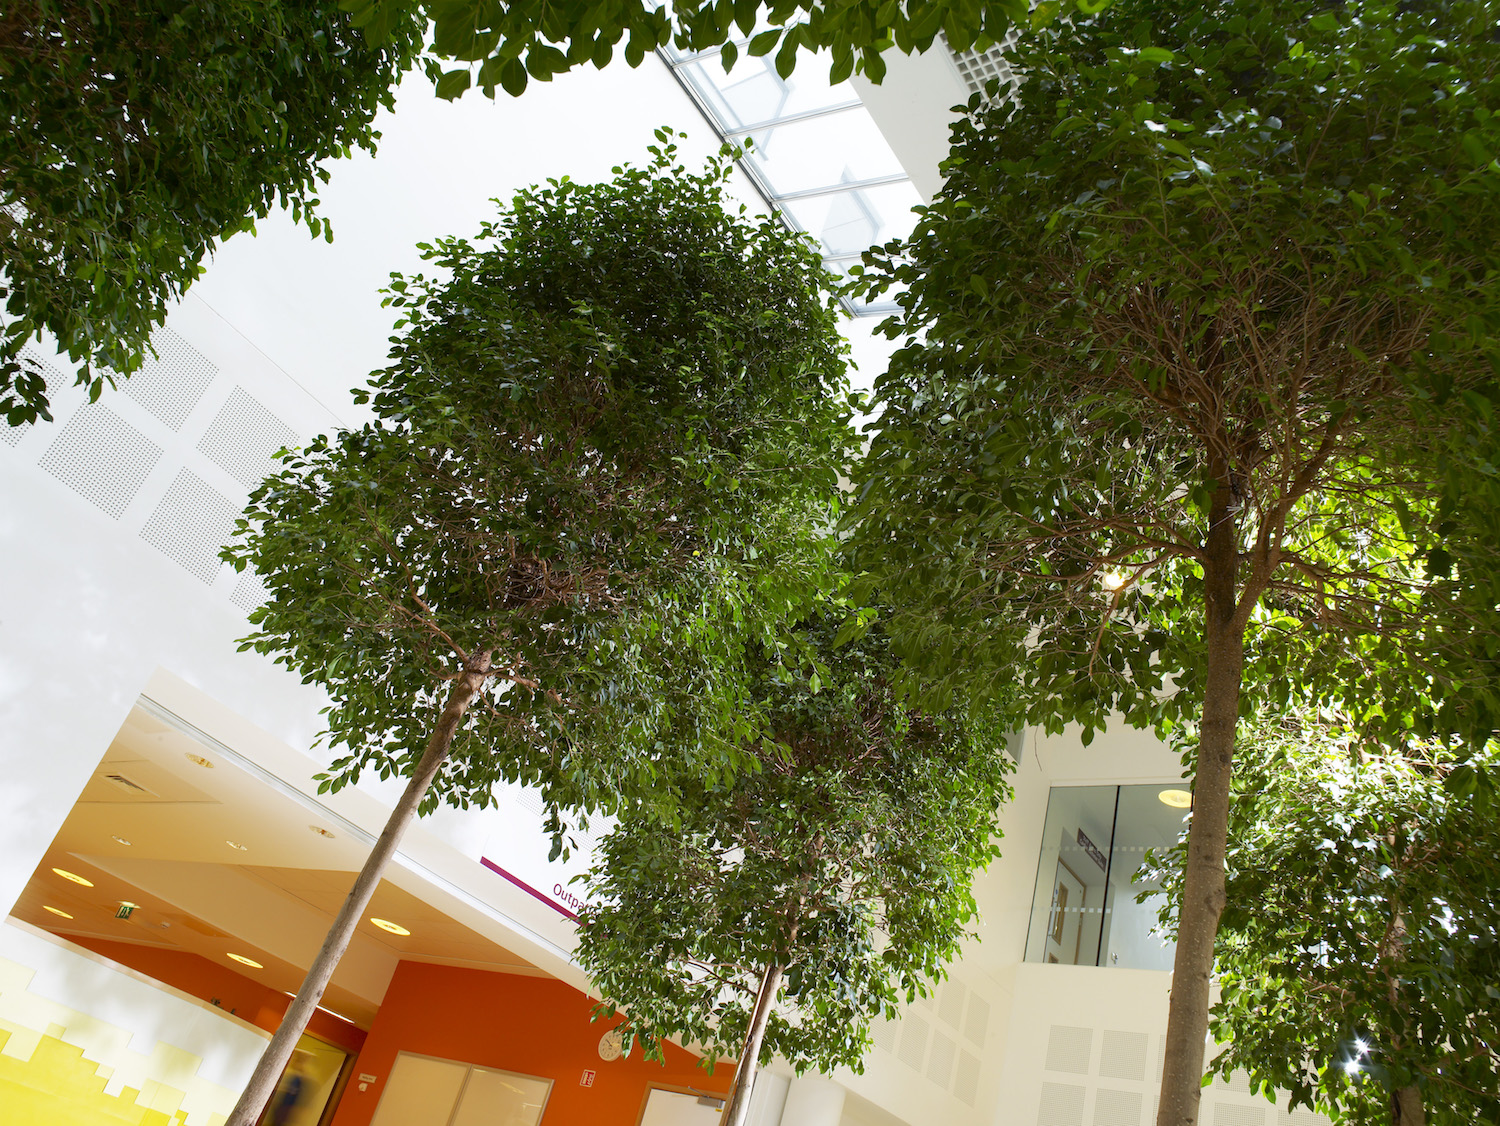 bristol-royal-infirmary-hospital-plantcare-interior-plants-trees-bristol-image-6